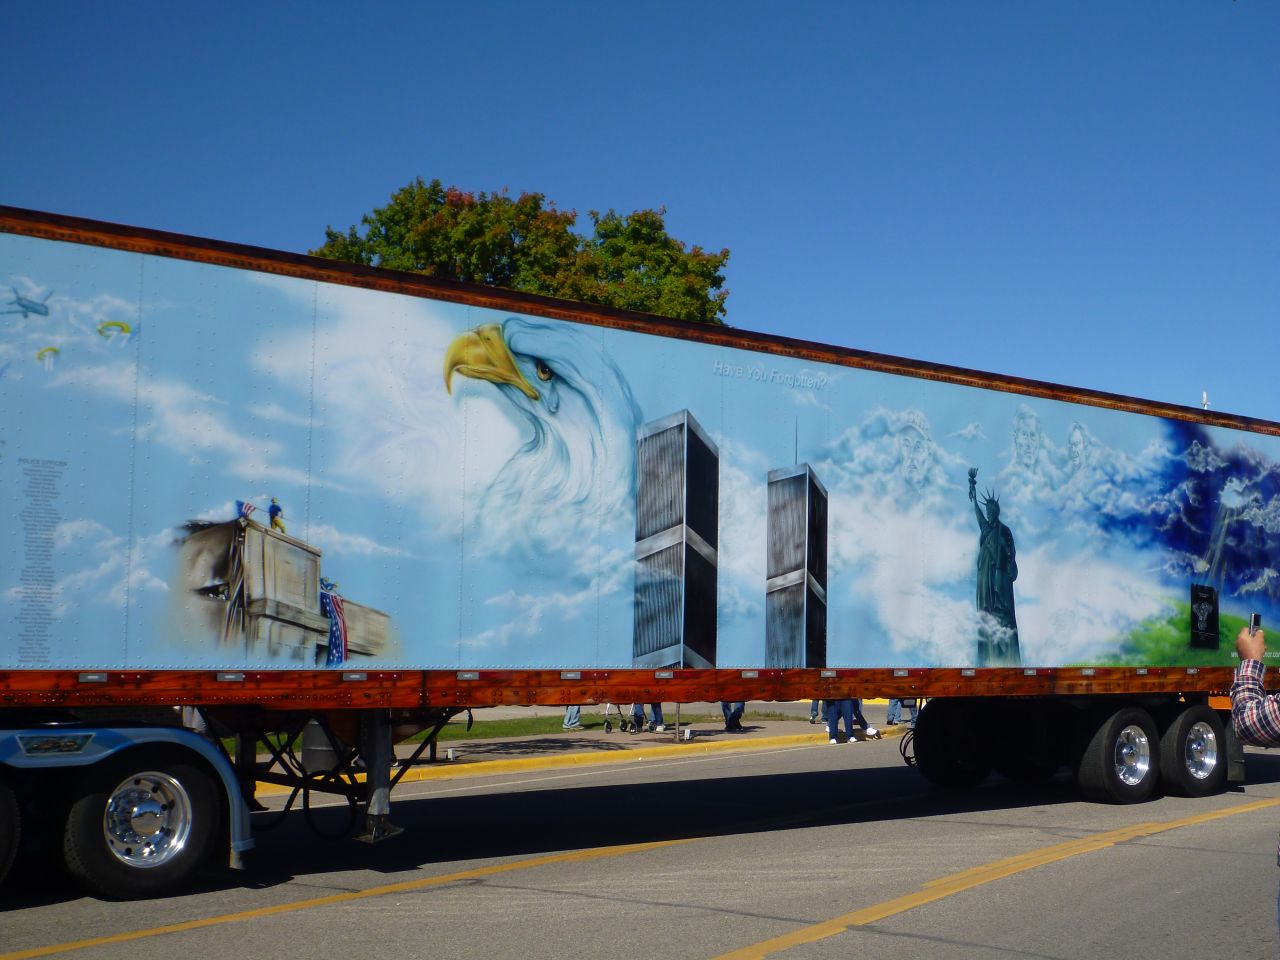 A Up Close Look At The Side Of The 9/11 Memorial Trailer.